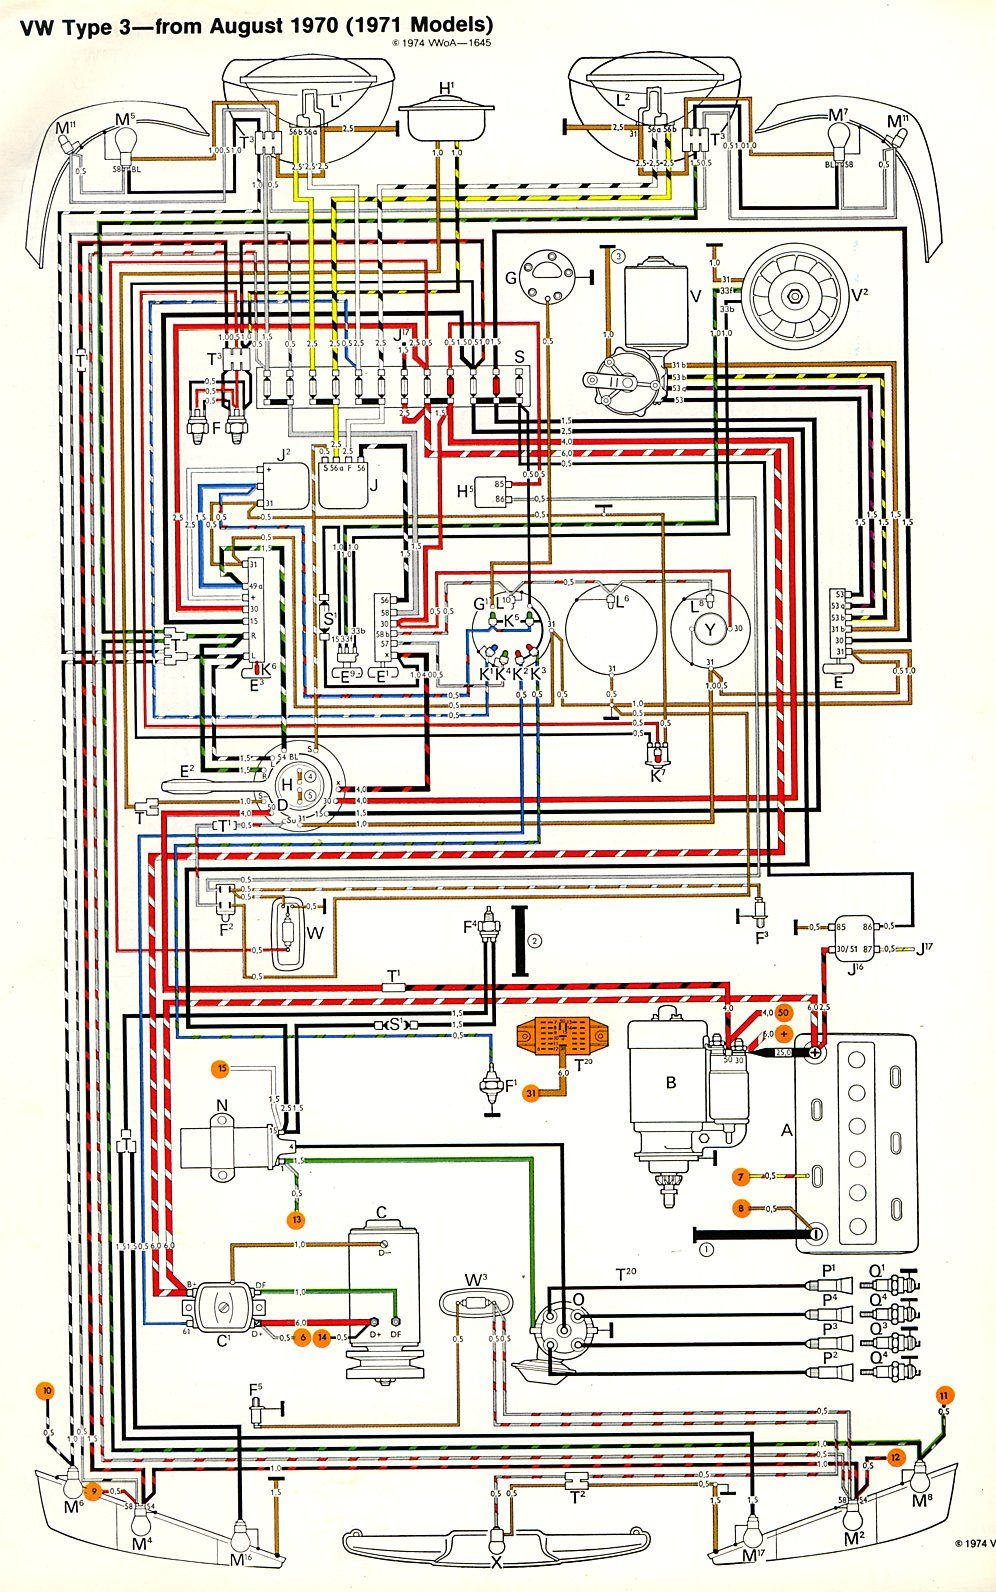 1971 Type III wiring diagram Van Interior, Diagram, Type 3, Volkswagen,  Vintage